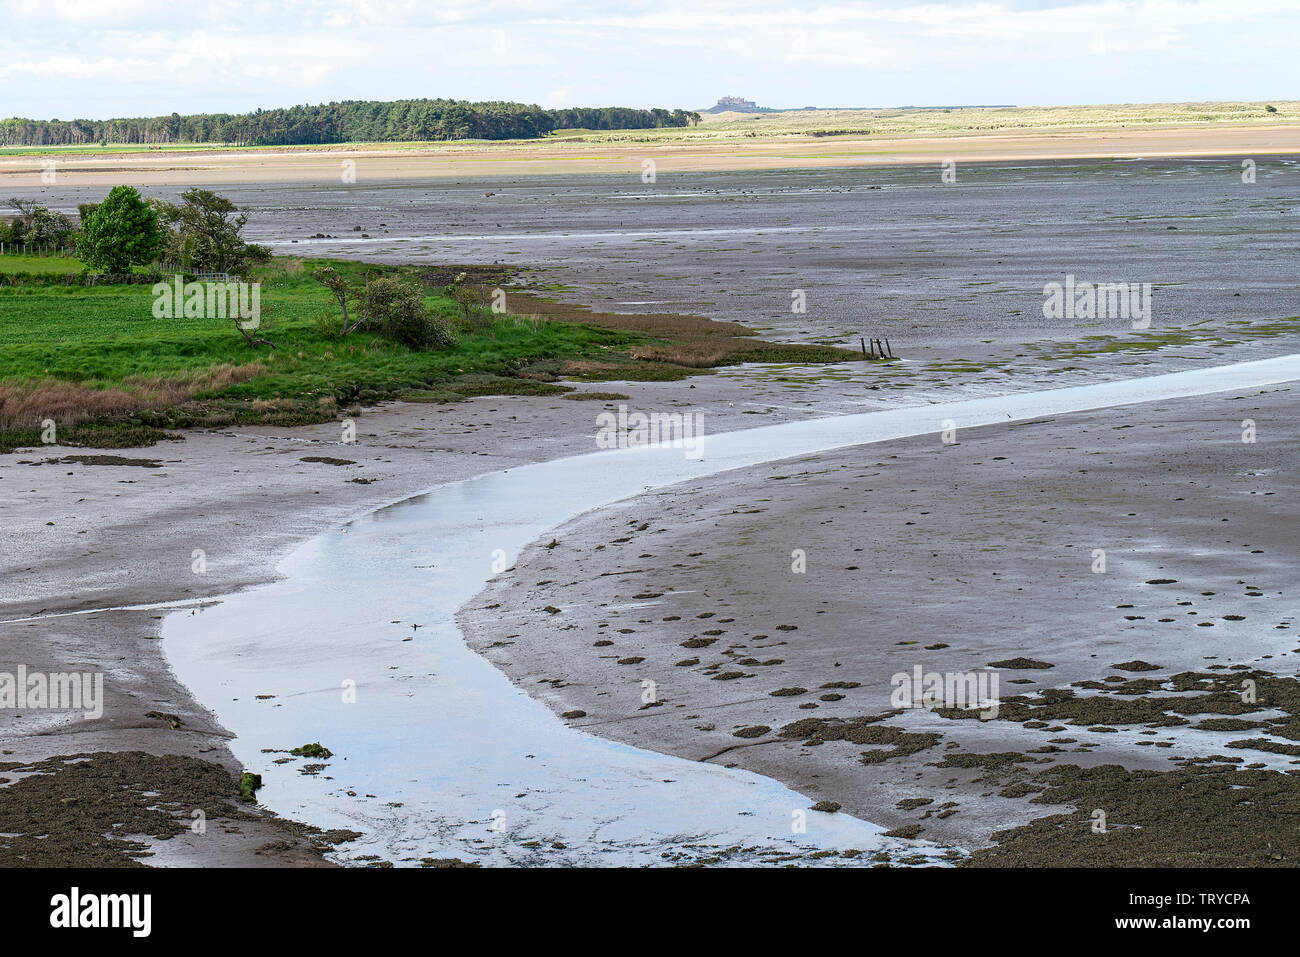 Budle Bay Stock Photos & Budle Bay Stock Images - Alamy